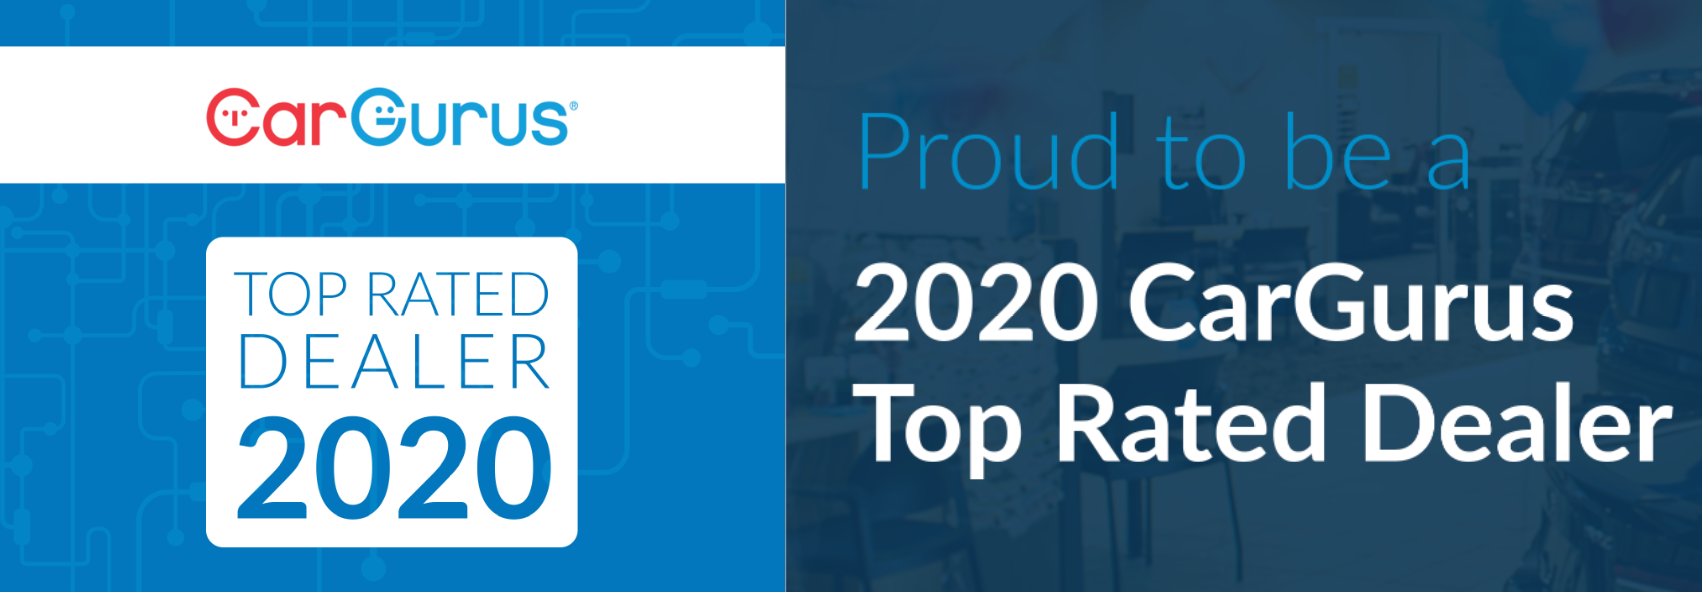 INFINITI of Boerne is a 2020 CarGurus Top Rated Dealer!